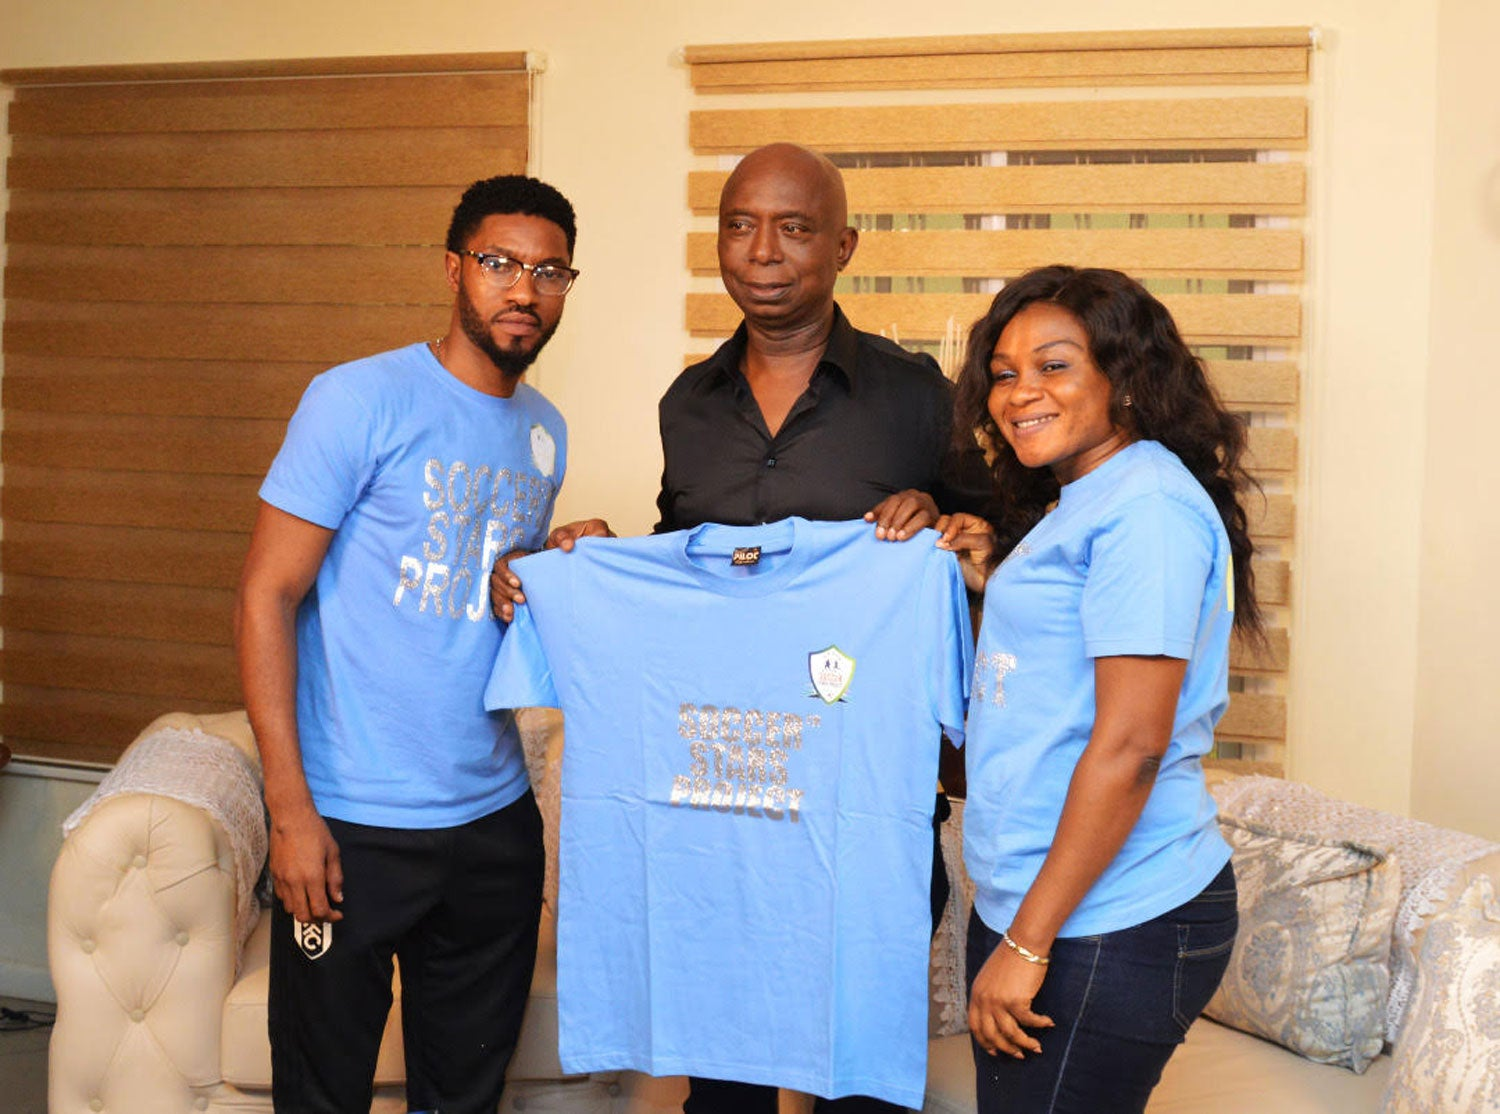 Prince Ned Nwoko Foundation sponsors a soccer competition. Photo: Vanguard News.